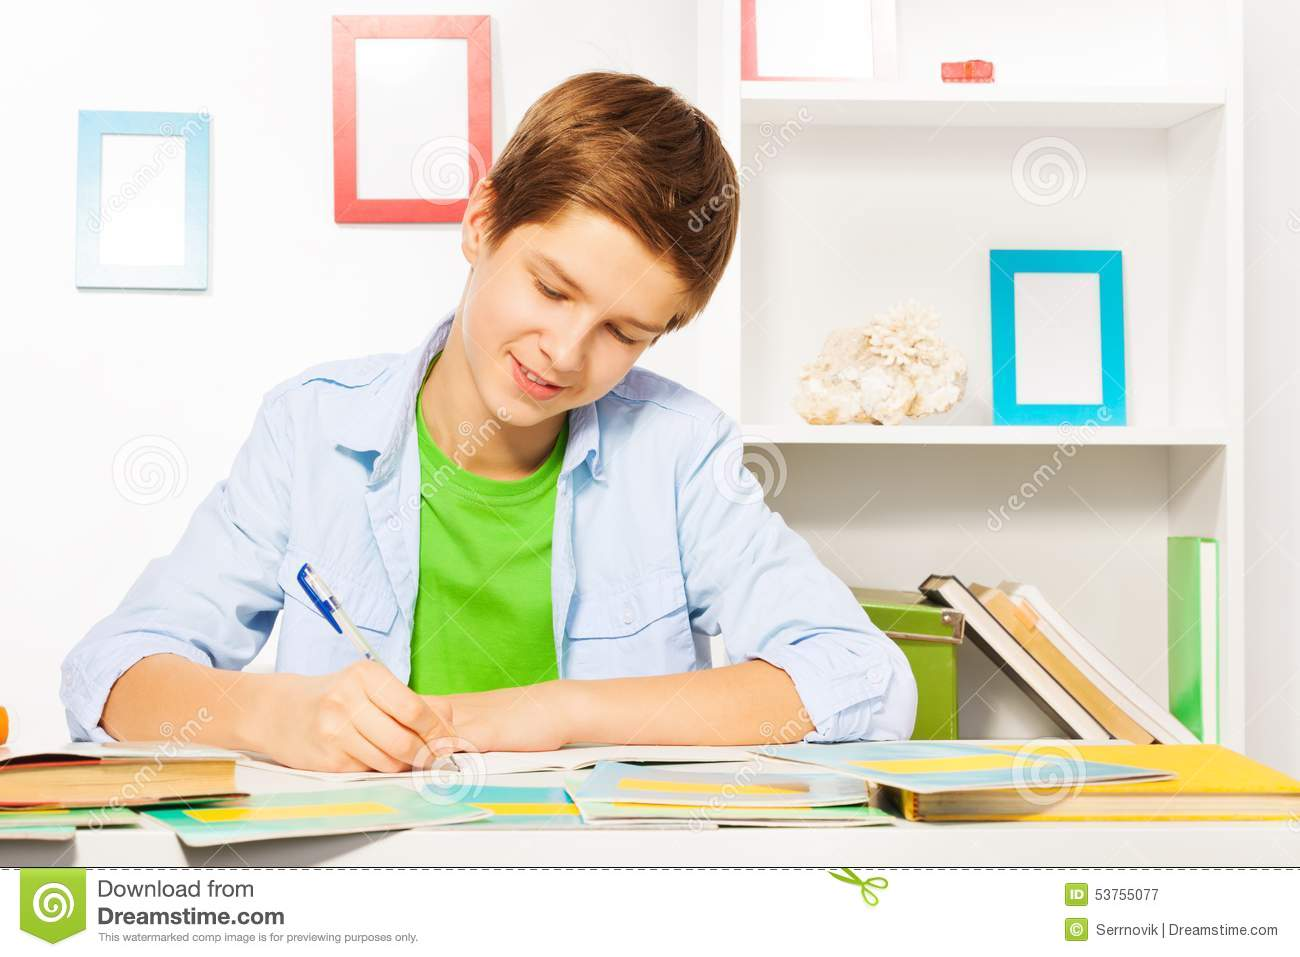 smart-handsome-boy-write-textbook-do-homework-nice-writing-doing-home-sitting-table-53755077.jpg